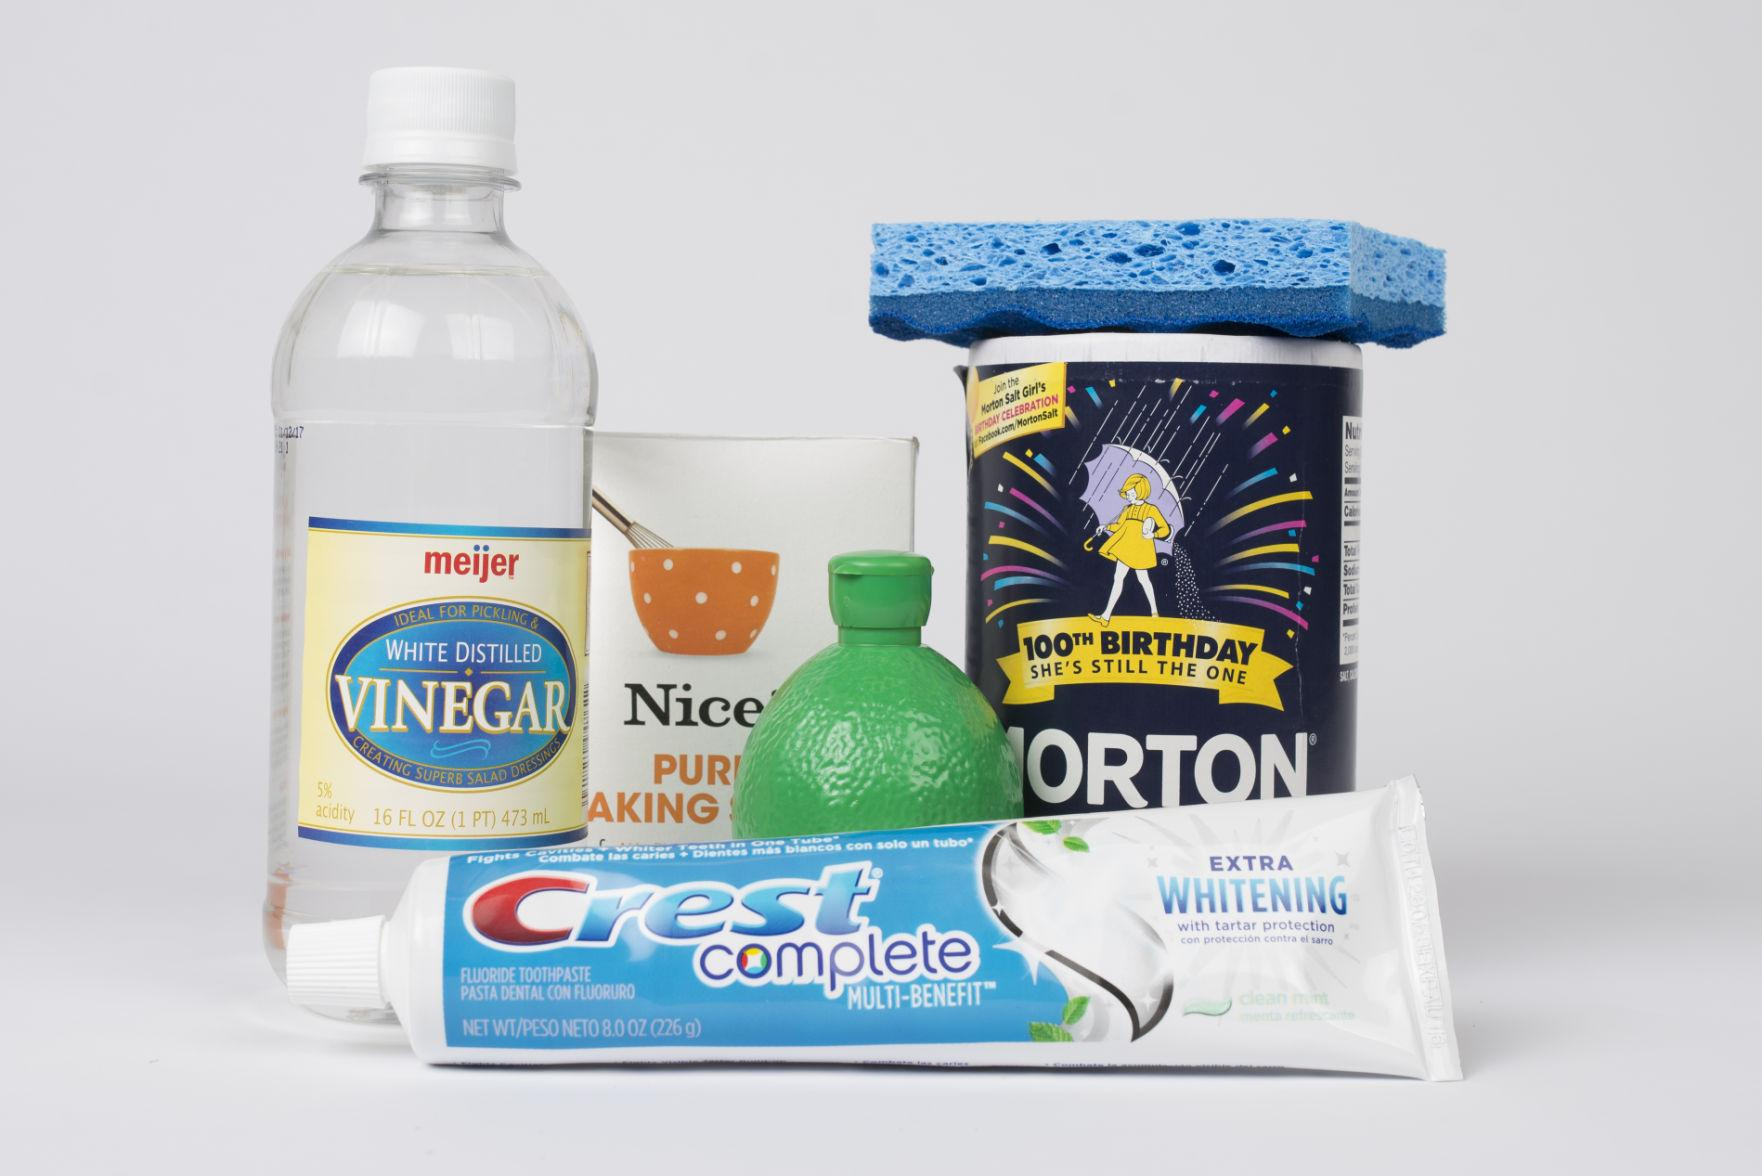 Vinegar, salt and toothpaste are a few examples of common household items that can be used for spring cleaning purposes.